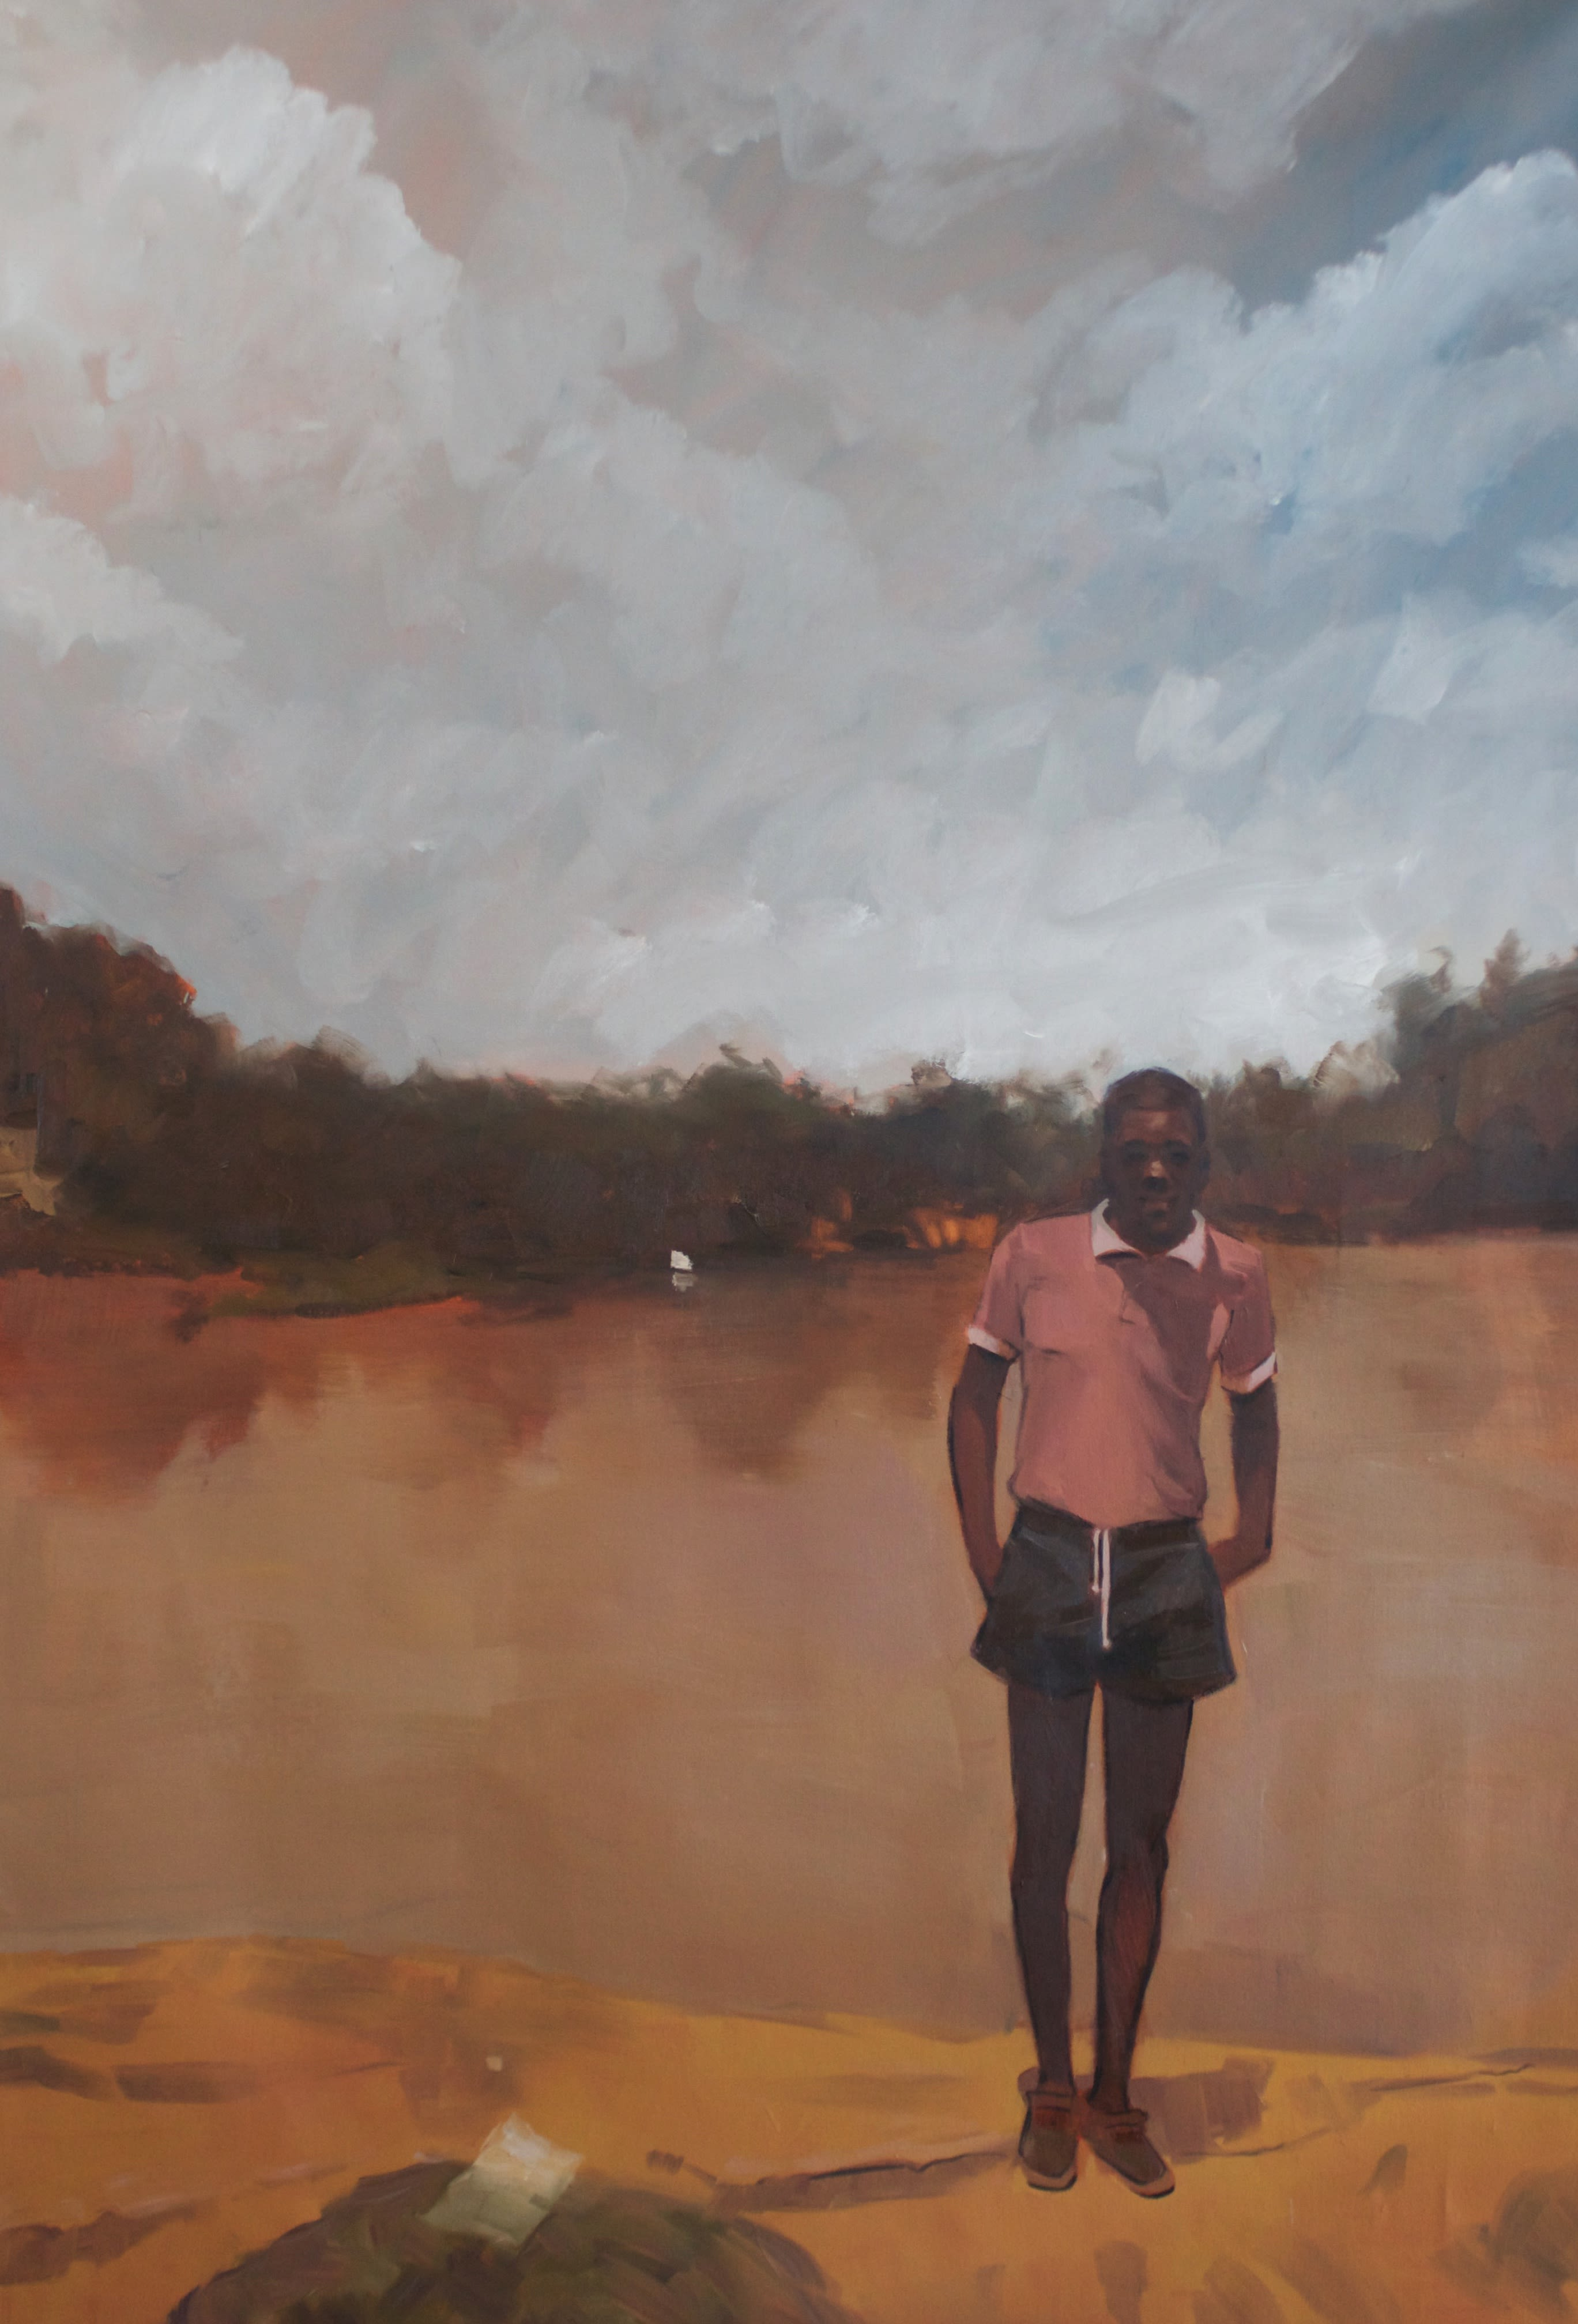 Artwork by Riley Holloway showing a young African American man or boy in front of a sabulous landscape.